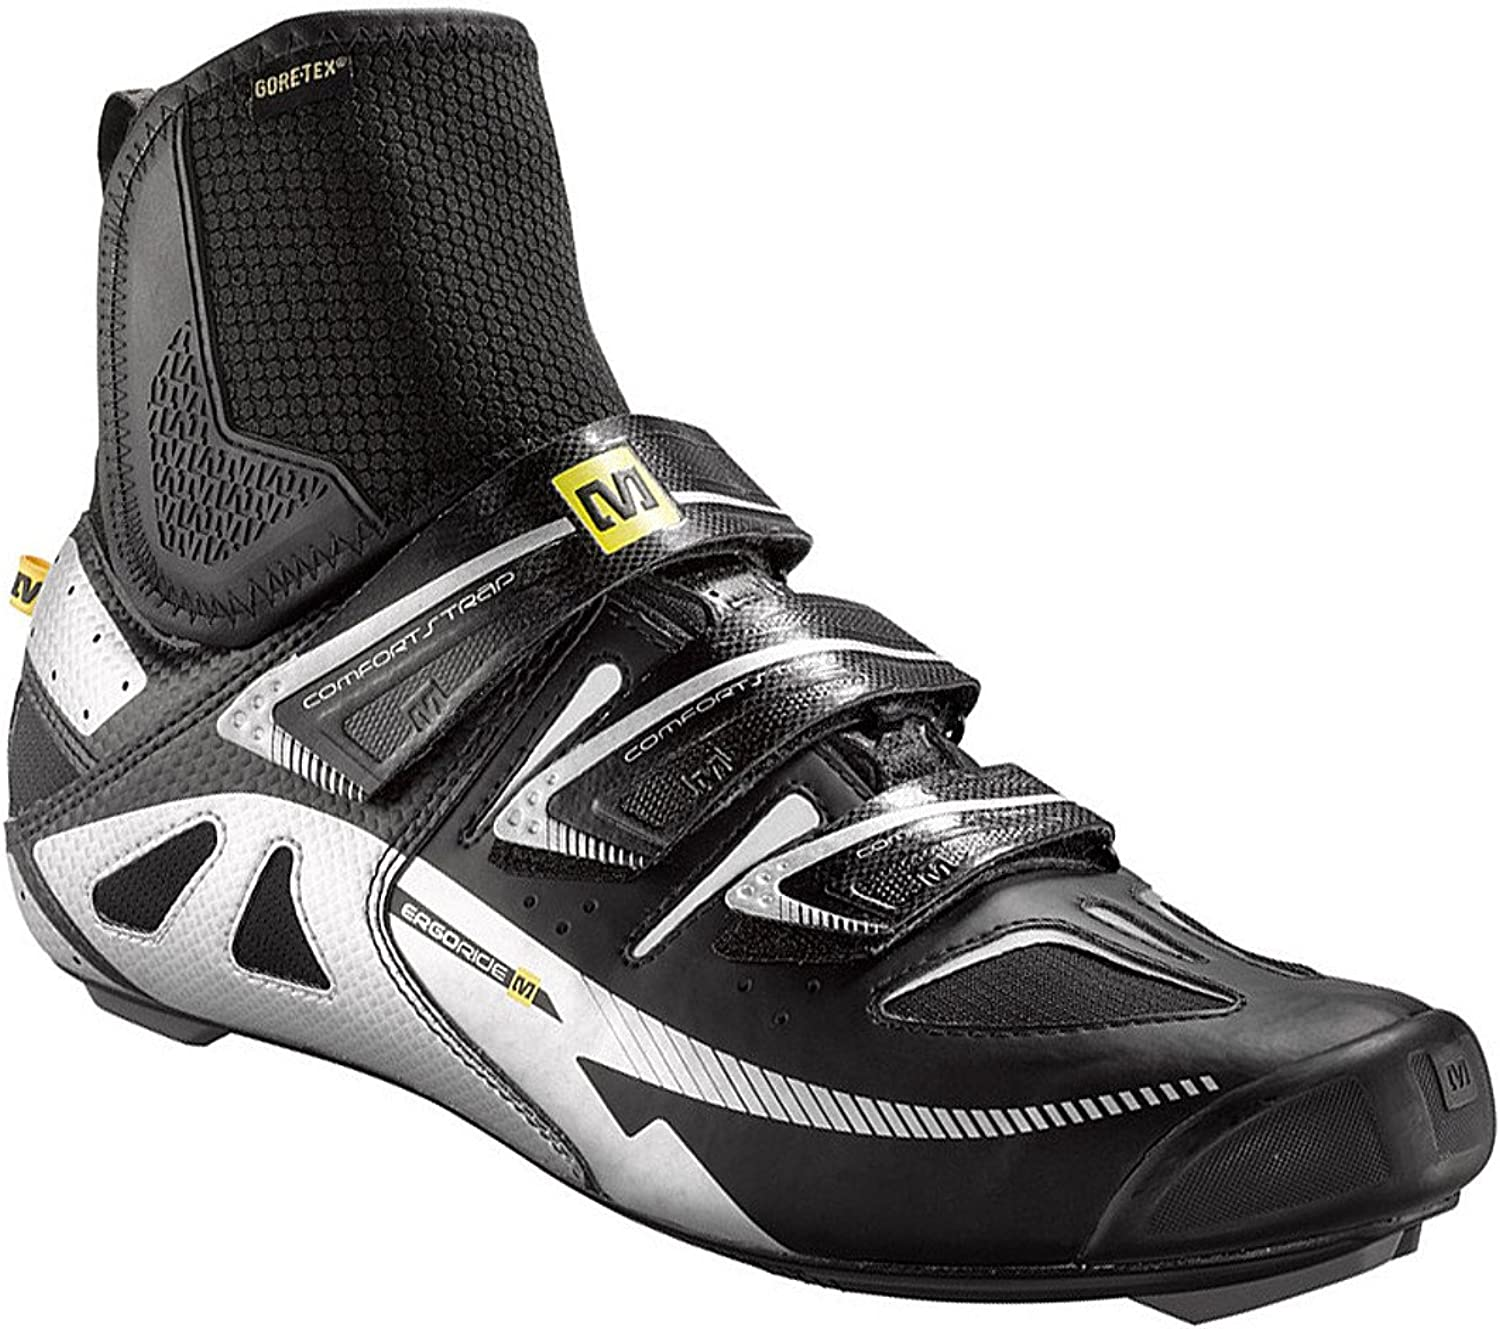 Mavic Frost Winter Road Cycling shoes